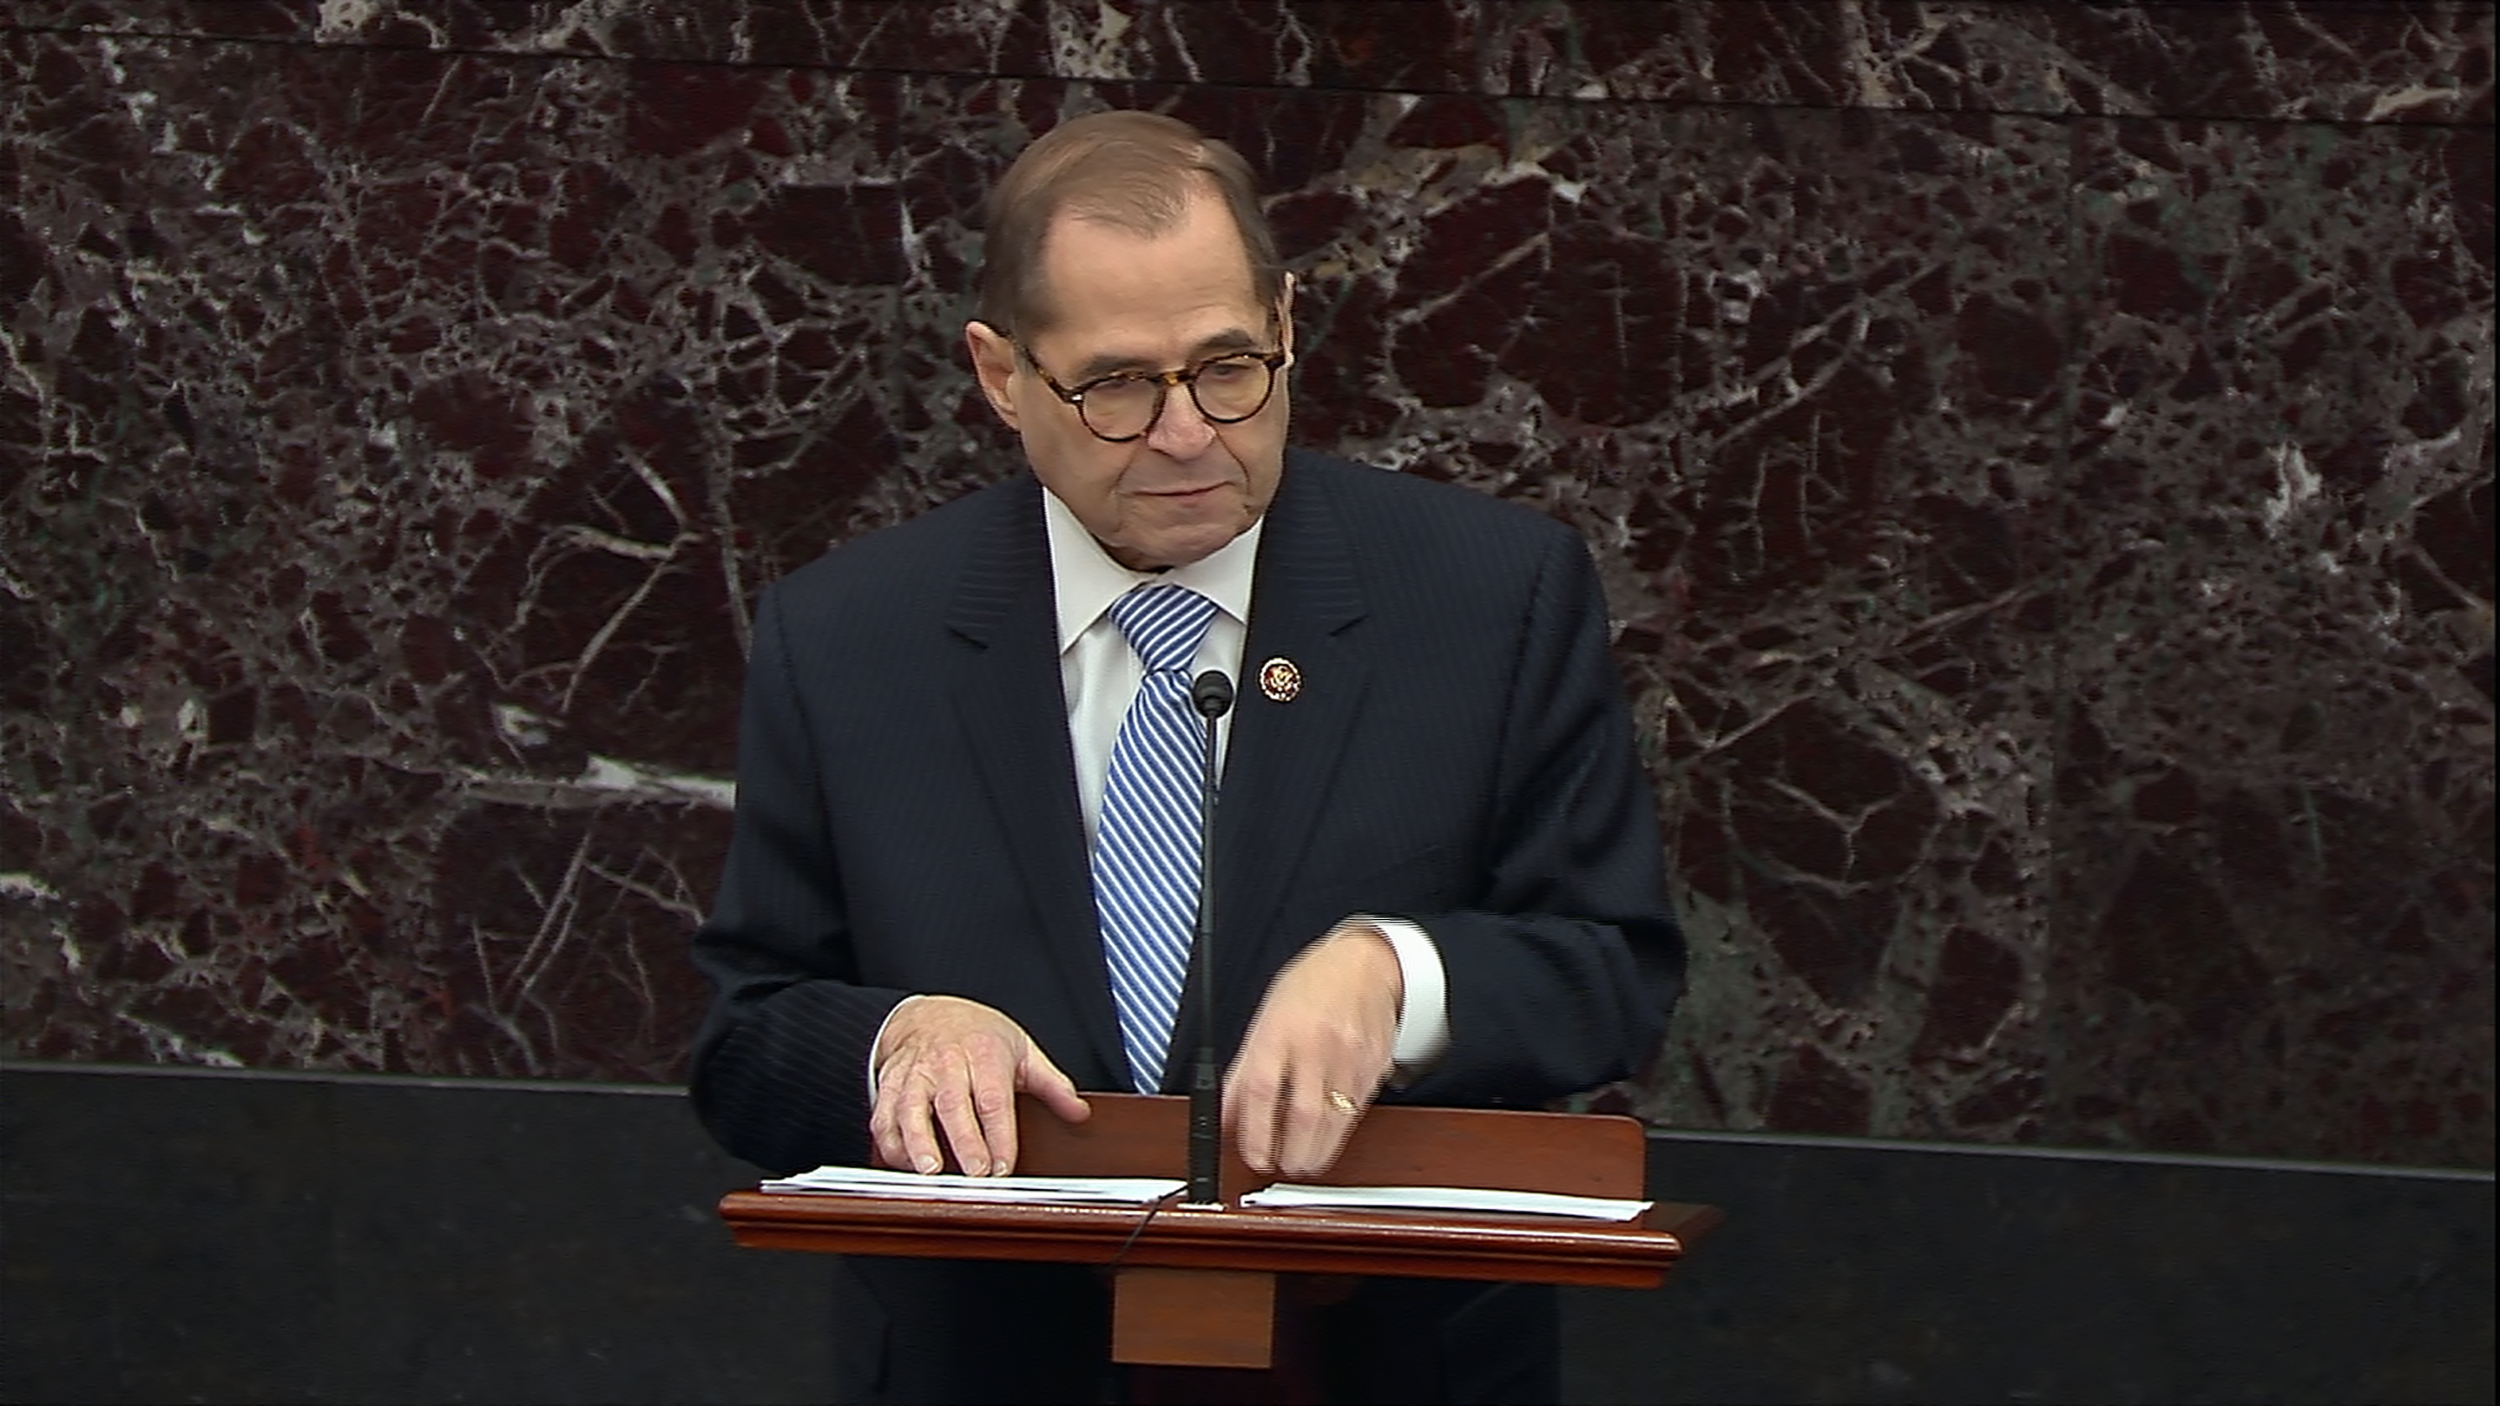 Nadler announces he will miss parts of impeachment trial as his wife undergoes cancer treatment